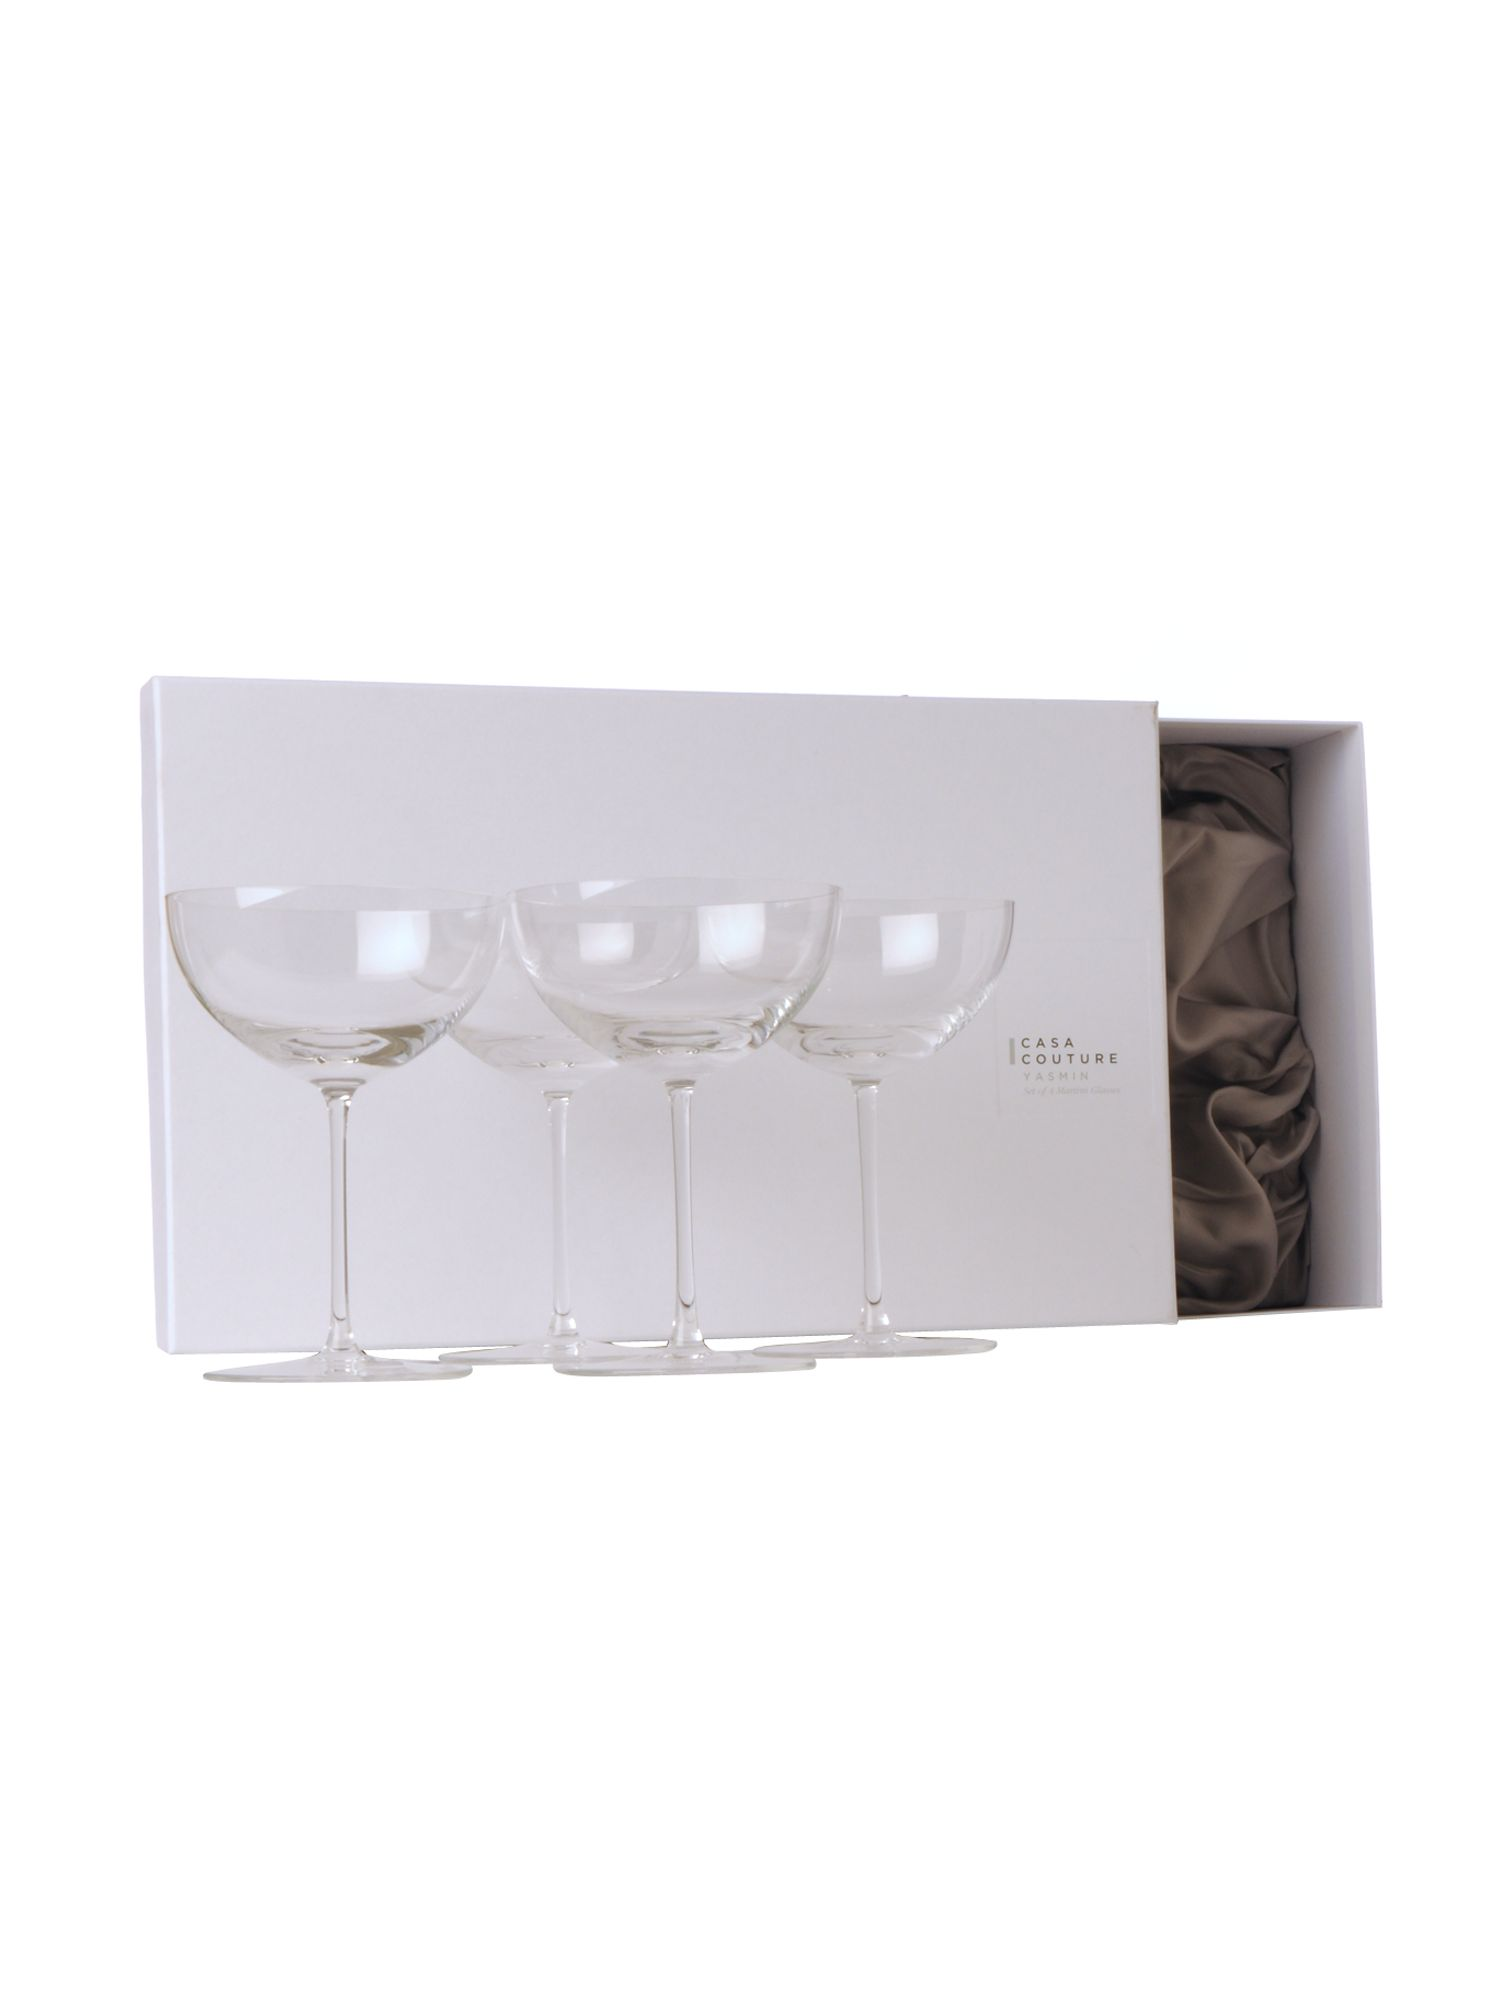 Casa Couture Yasmin martini glasses box of 4